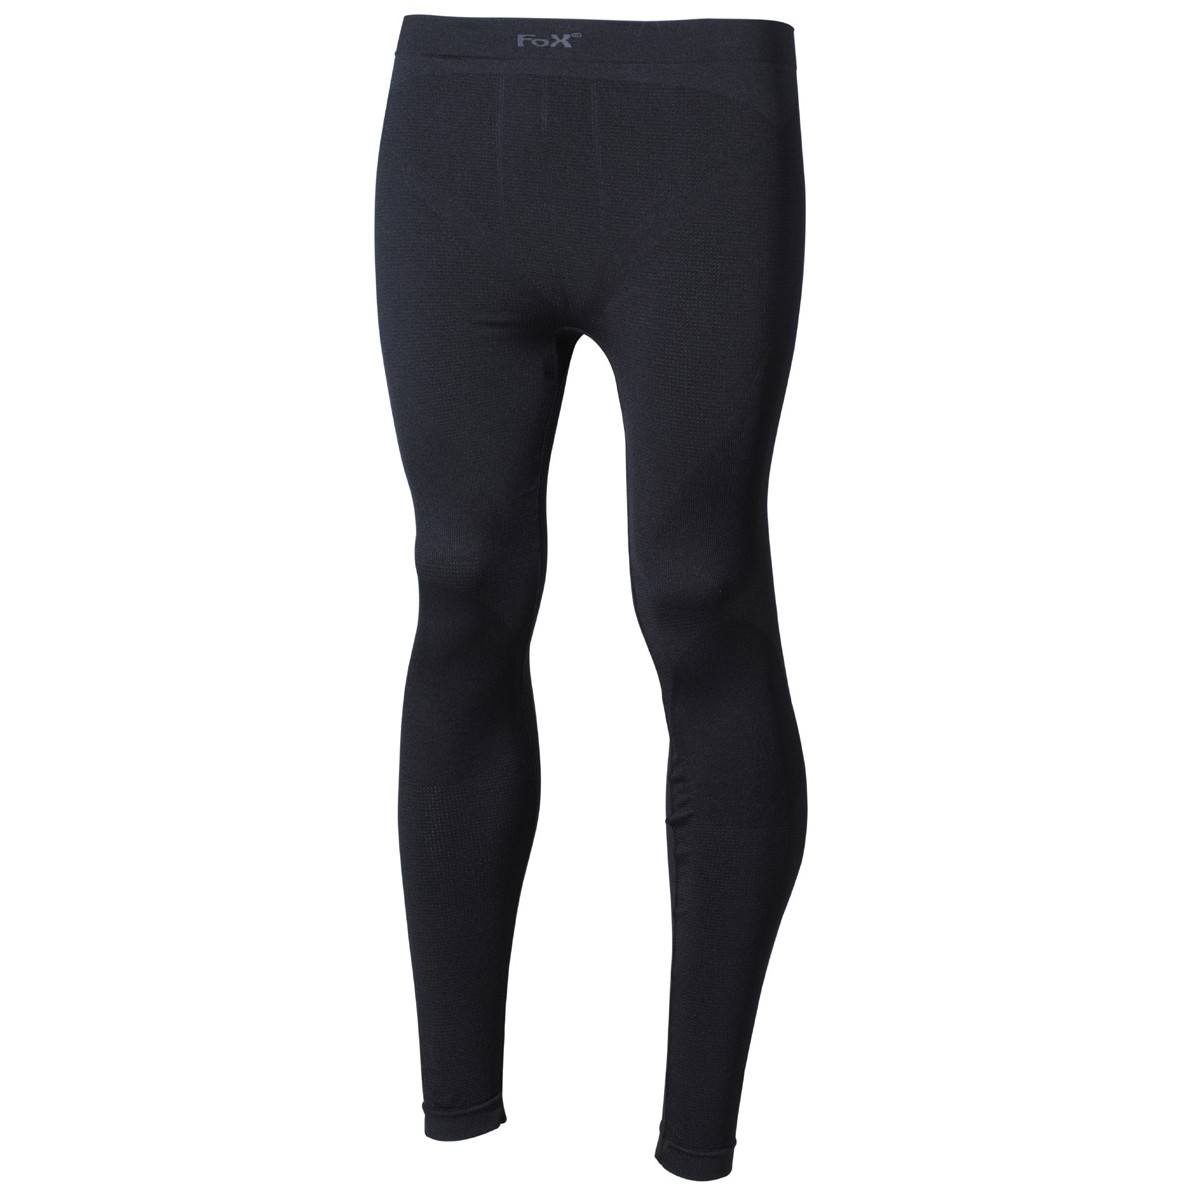 Functional Outdoor Thermo Underpants - Black